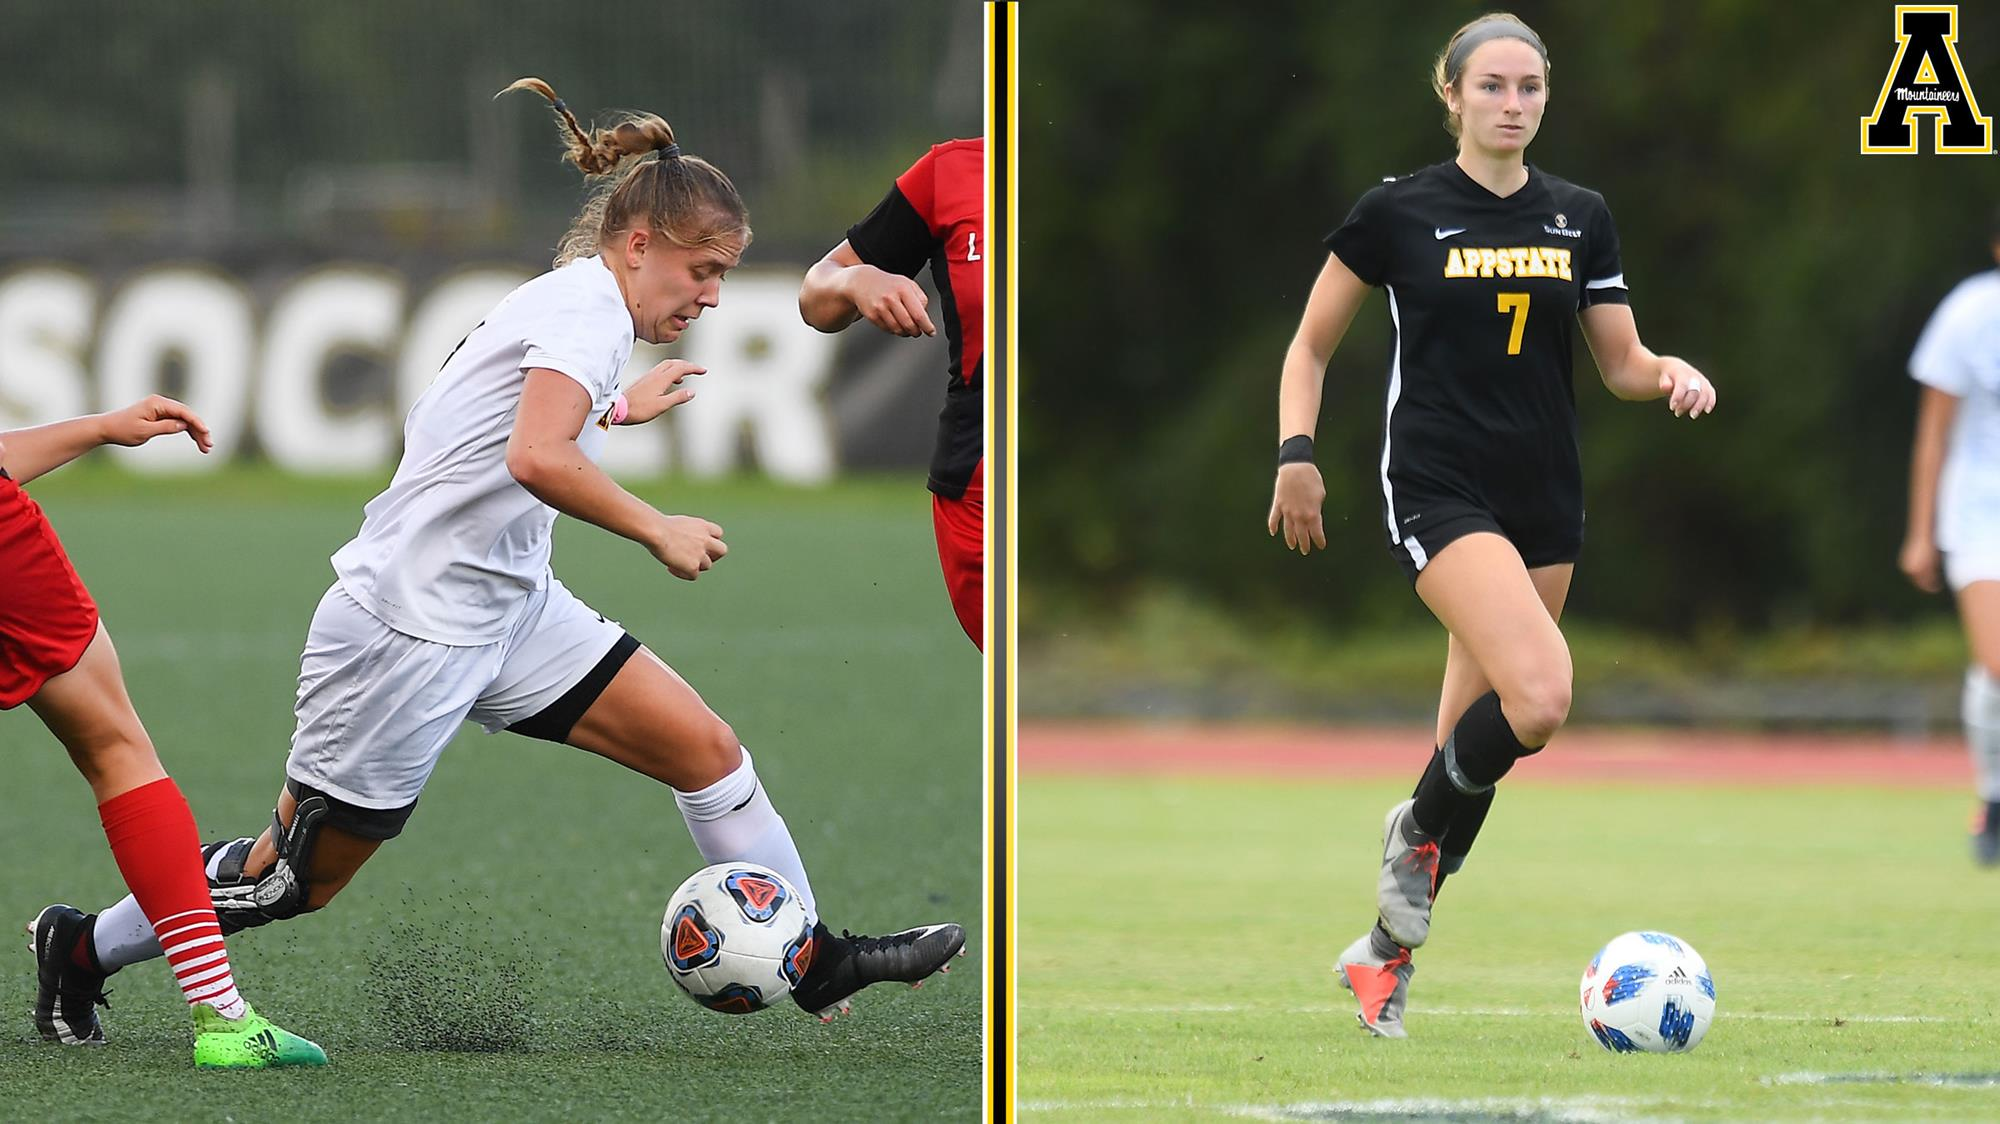 eb981fe8c Easley and Greer Named NCCSIA All-State - Appalachian State ...